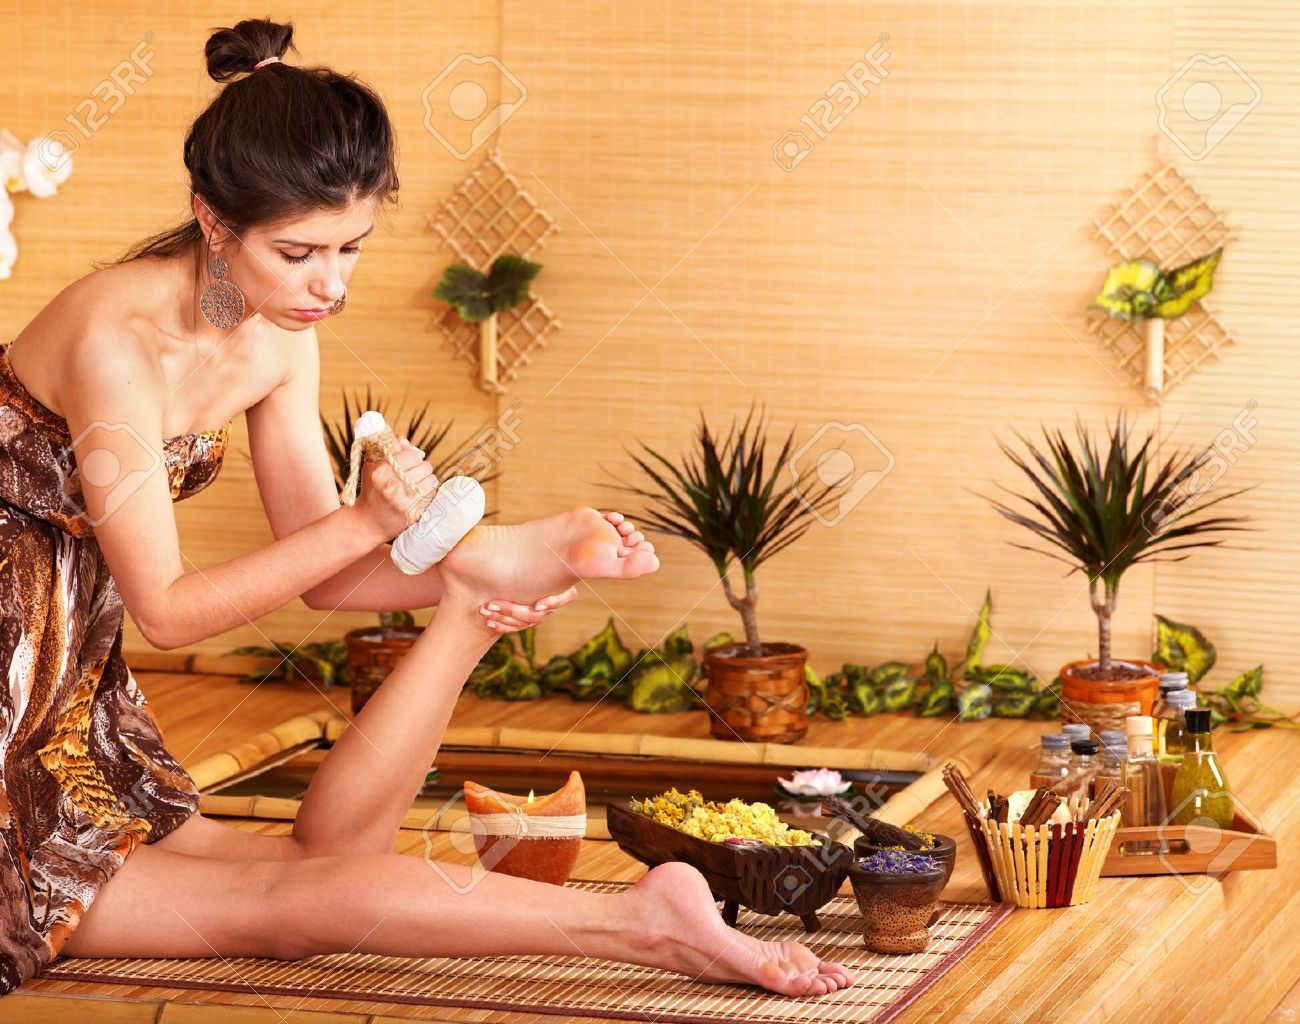 Young woman getting foot massage in bamboo spa. Stock Photo - 10778746